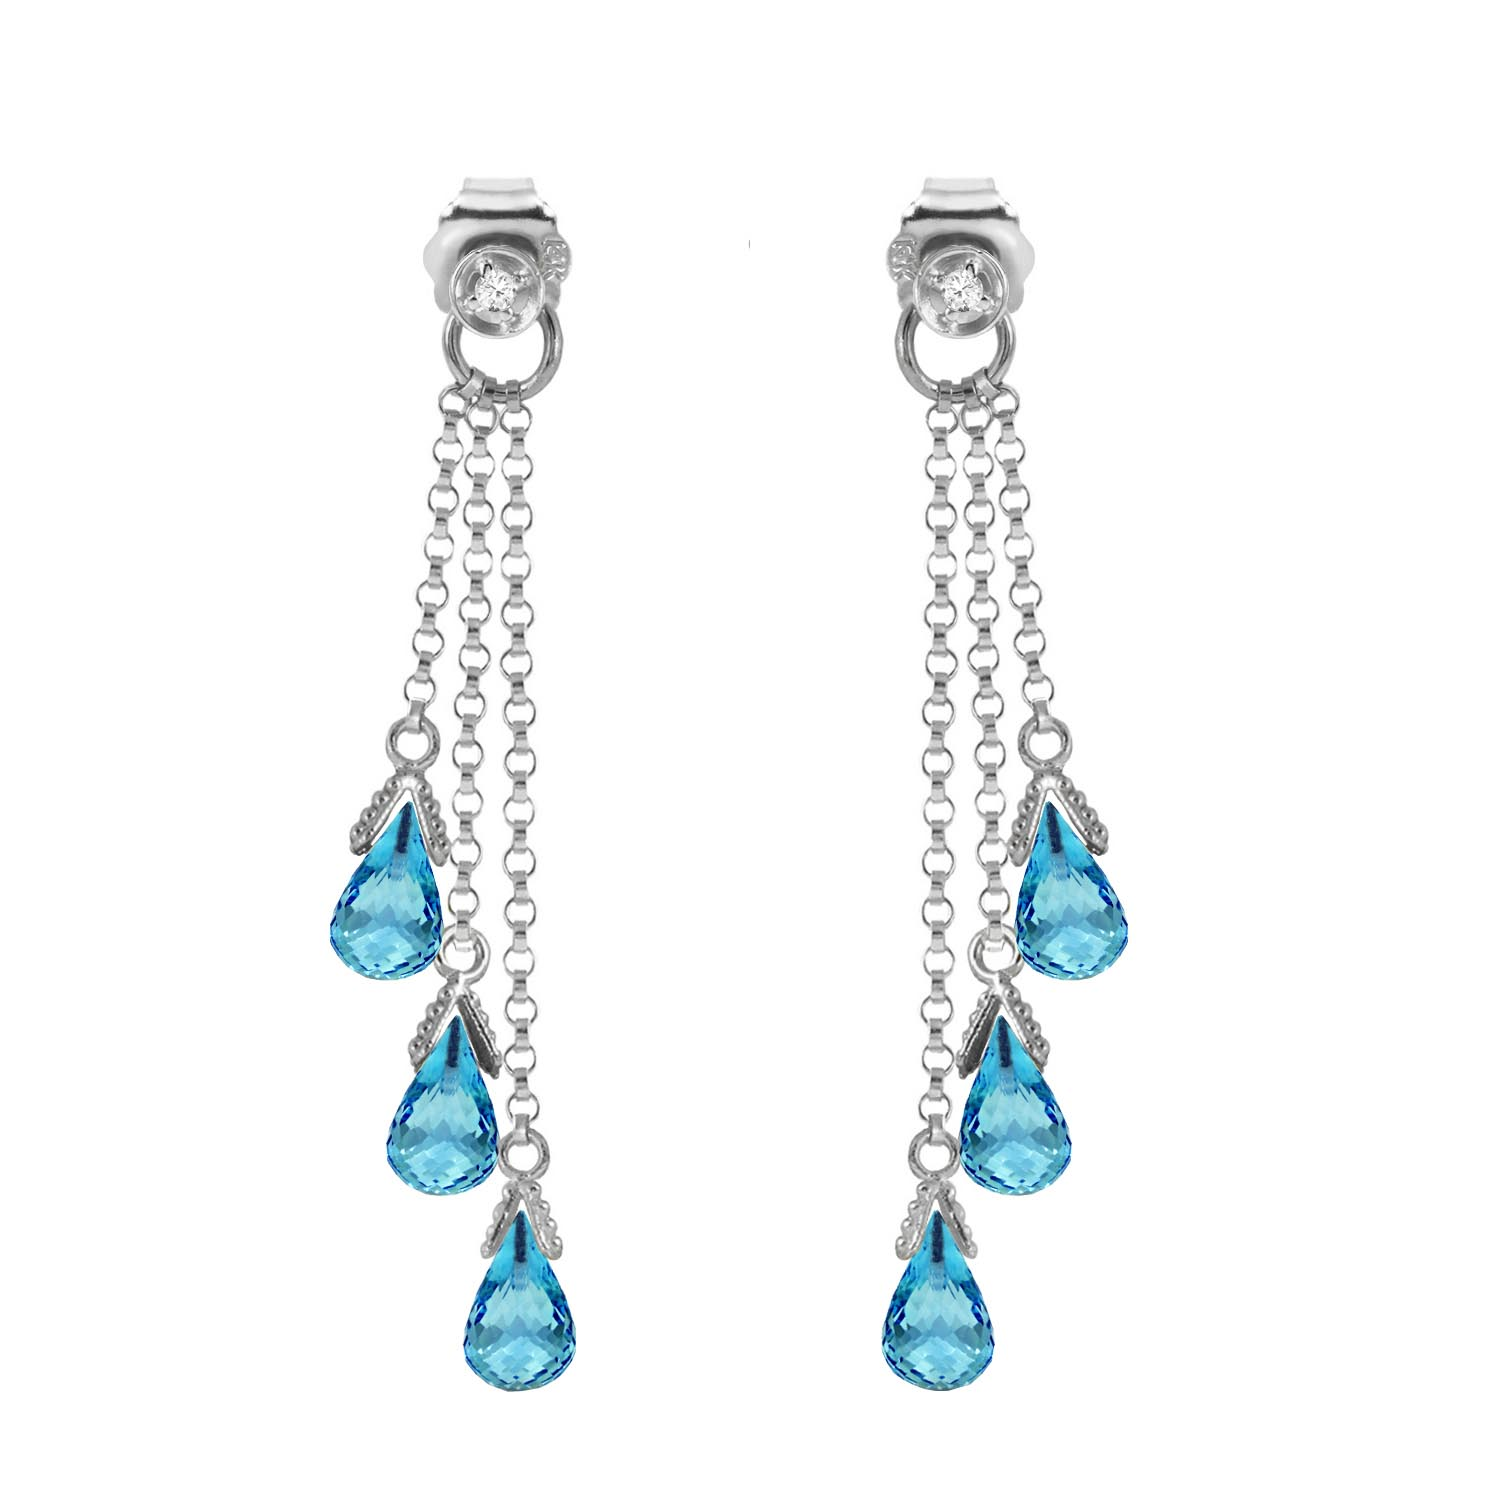 Blue Topaz and Diamond Trilogy Droplet Earrings 10.5ctw in 9ct White Gold